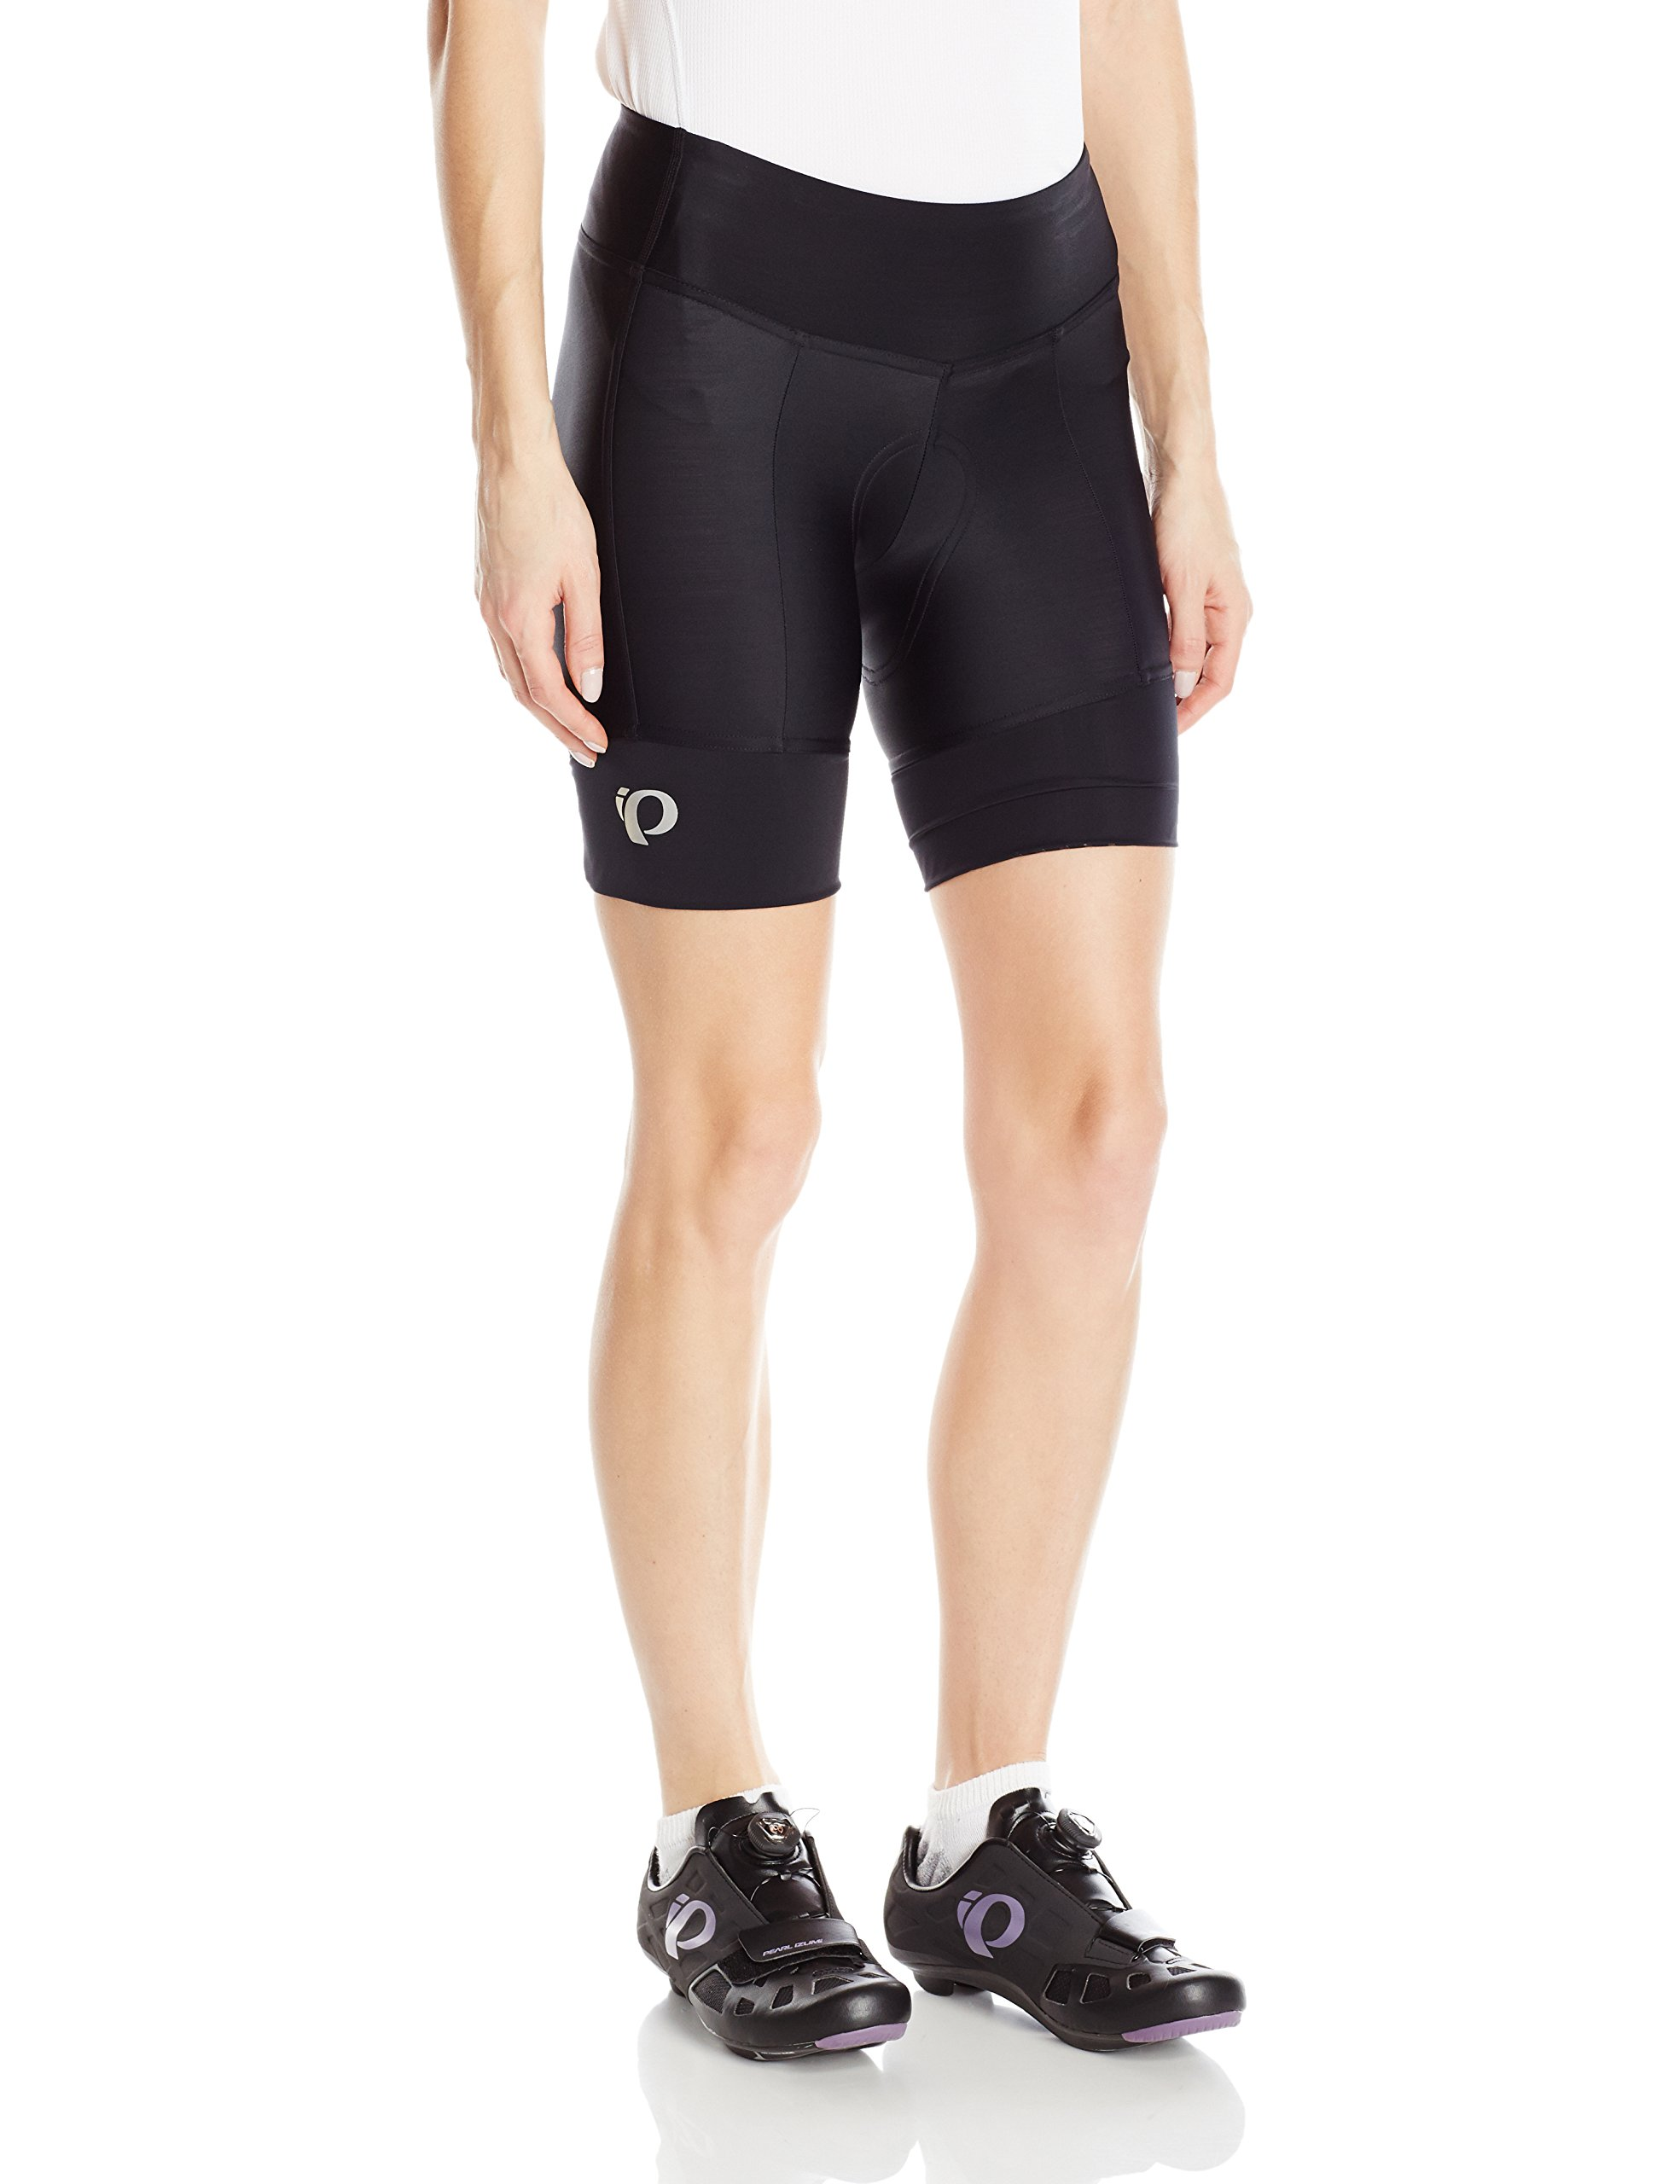 Pearl iZUMi W Pursuit Attack Shorts, Black Diffuse Texture, Small